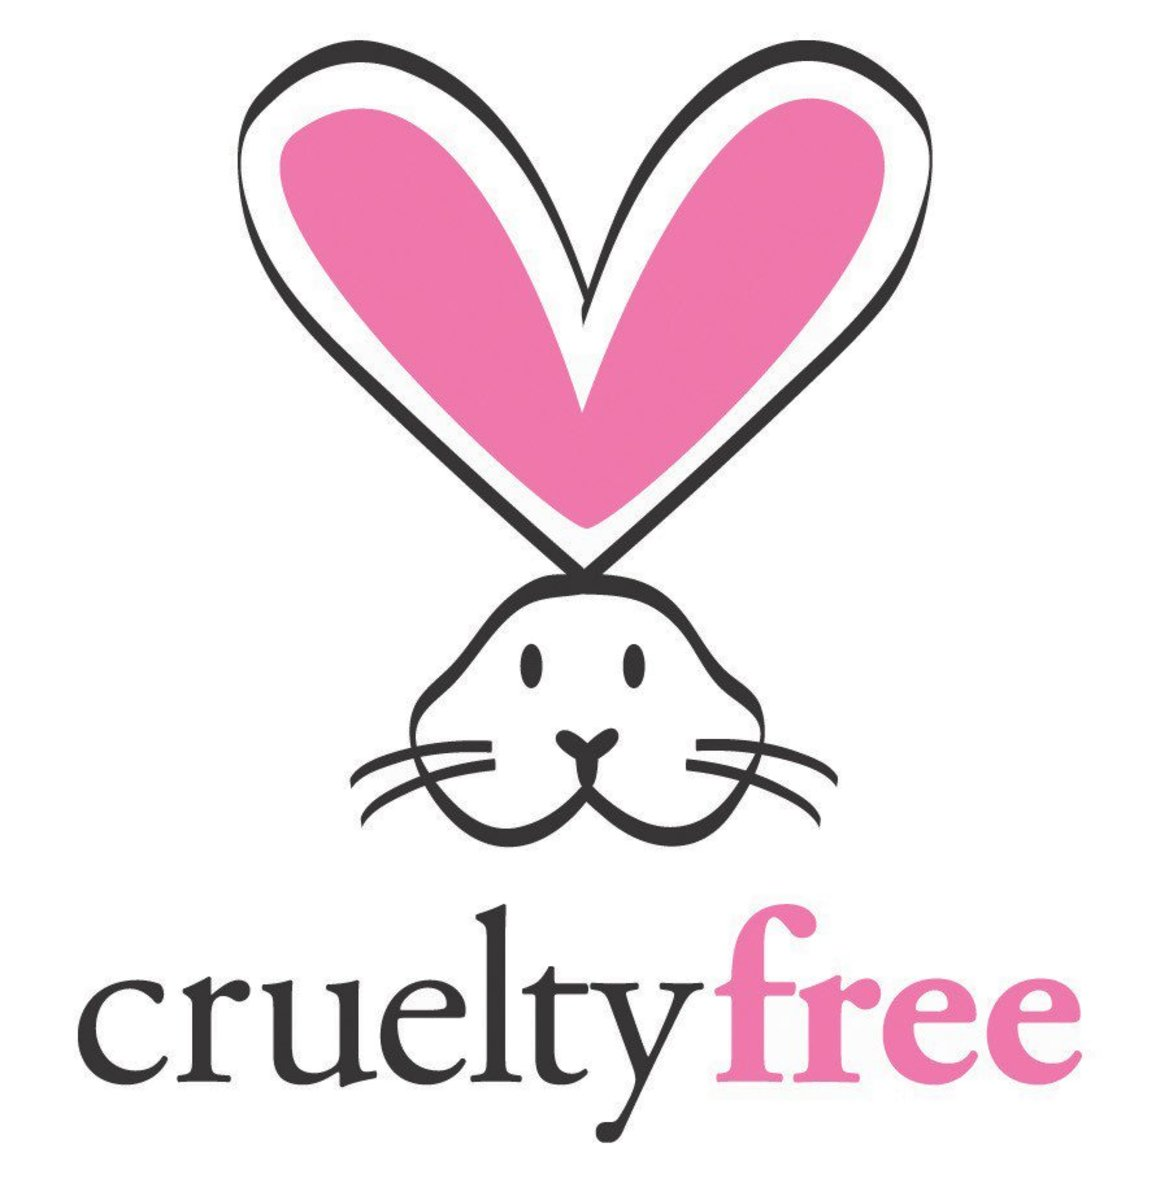 This is one of the labels that appears on cruelty-free beauty product labels.